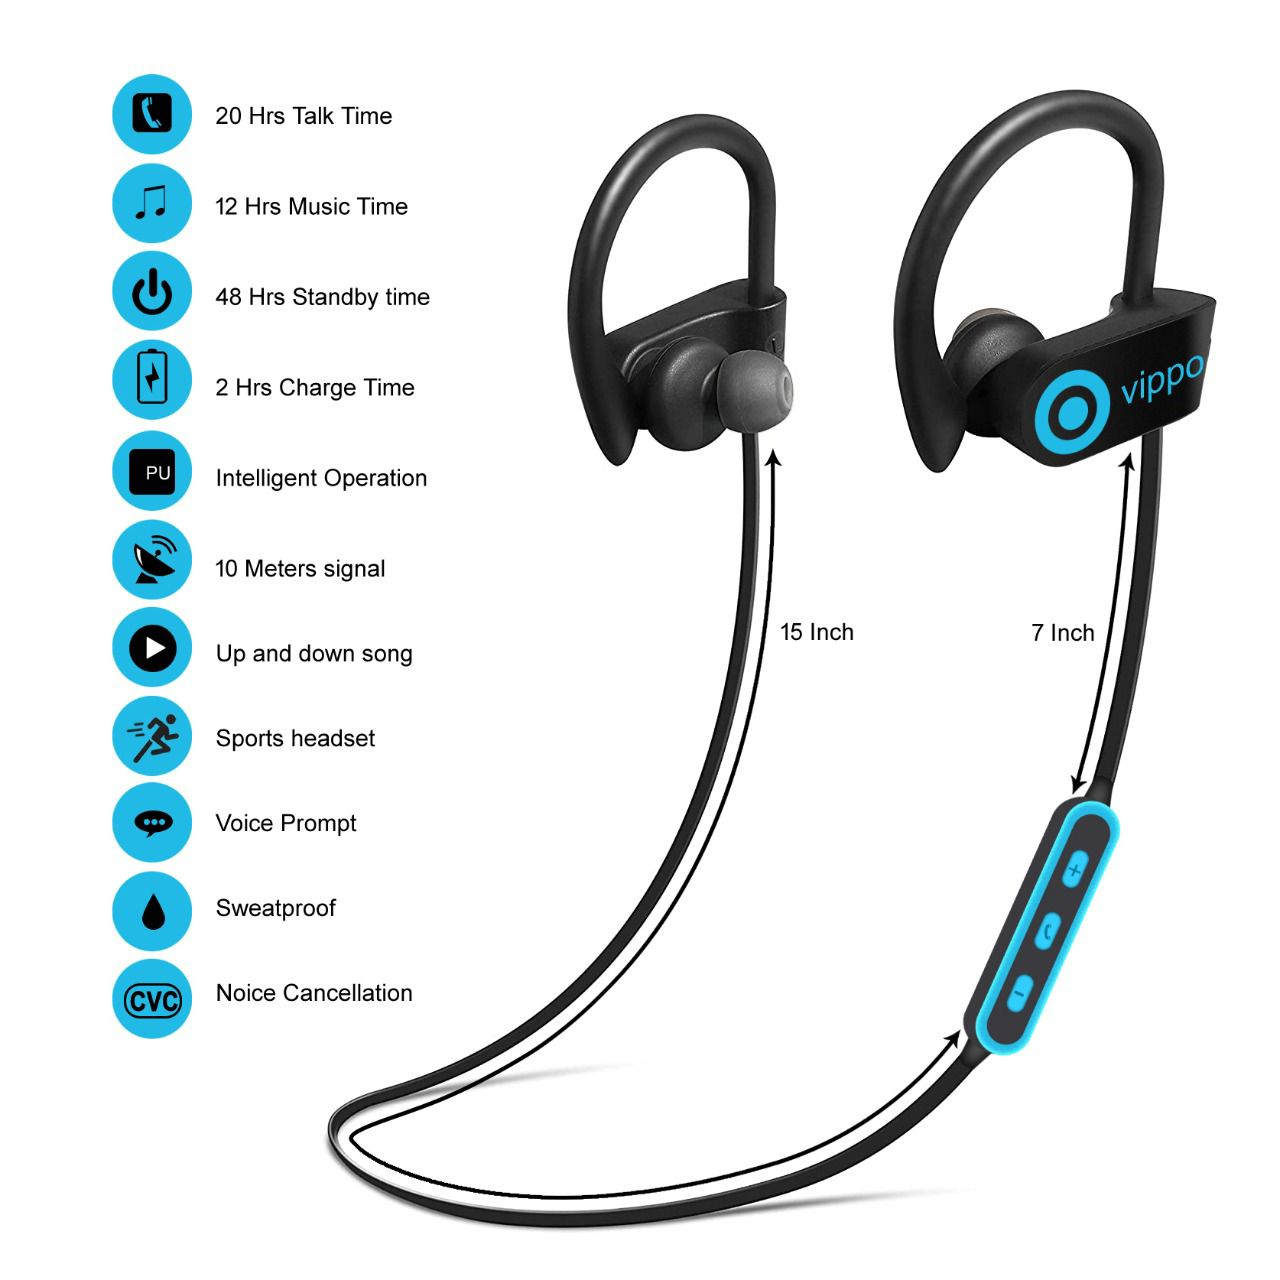 VIPPO QC 10 Gio Zone HItage Bluetooth airbud Orginal Airpod Neckband Wireless With Mic Headphones/Earphones